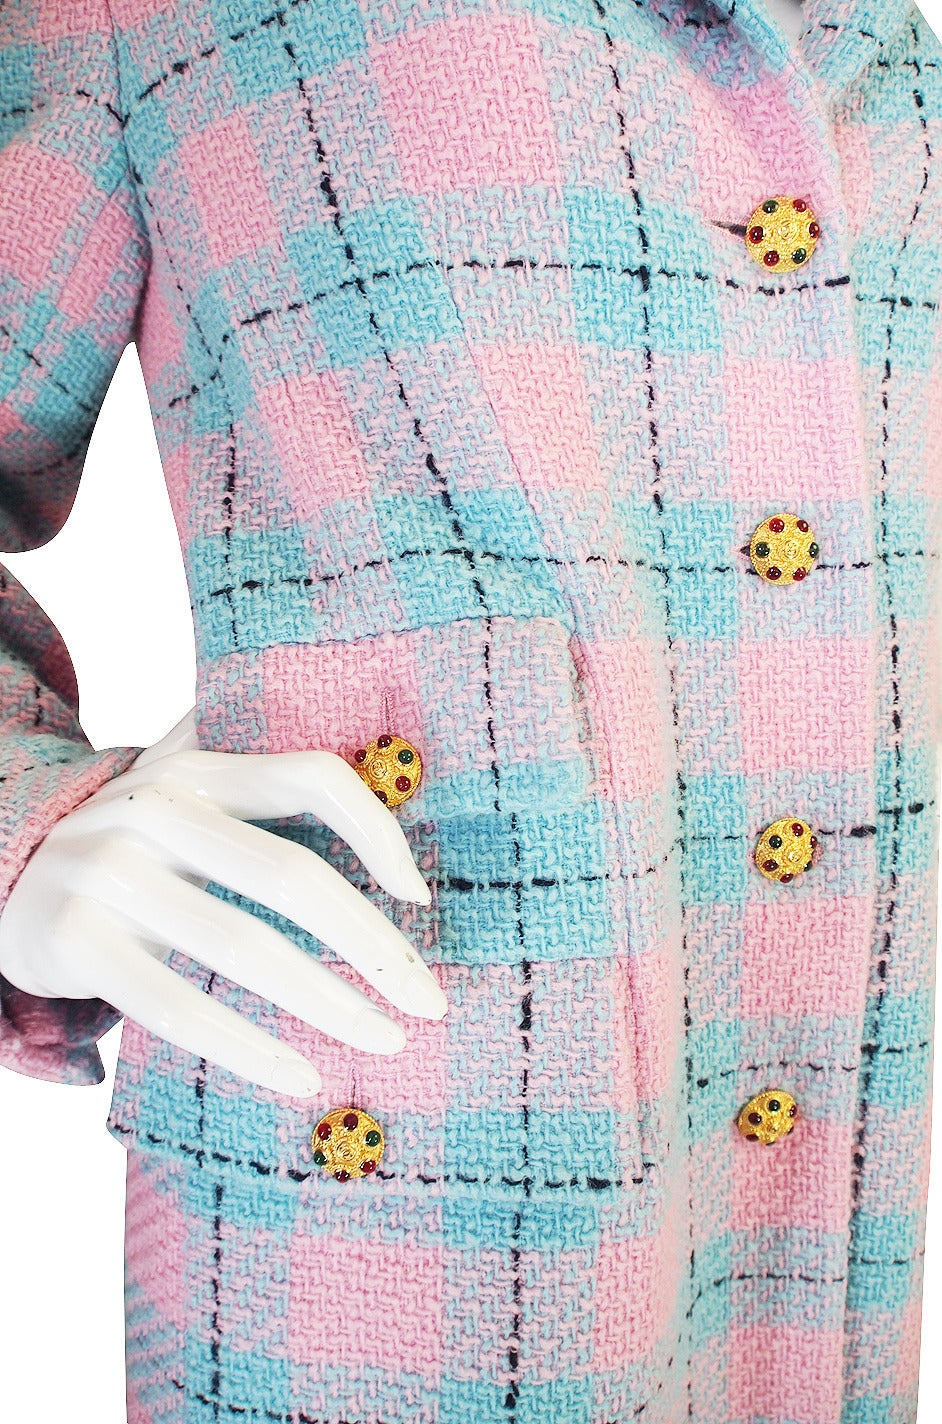 96A Pastel Runway Chanel Coat w Cabochon Buttons 8